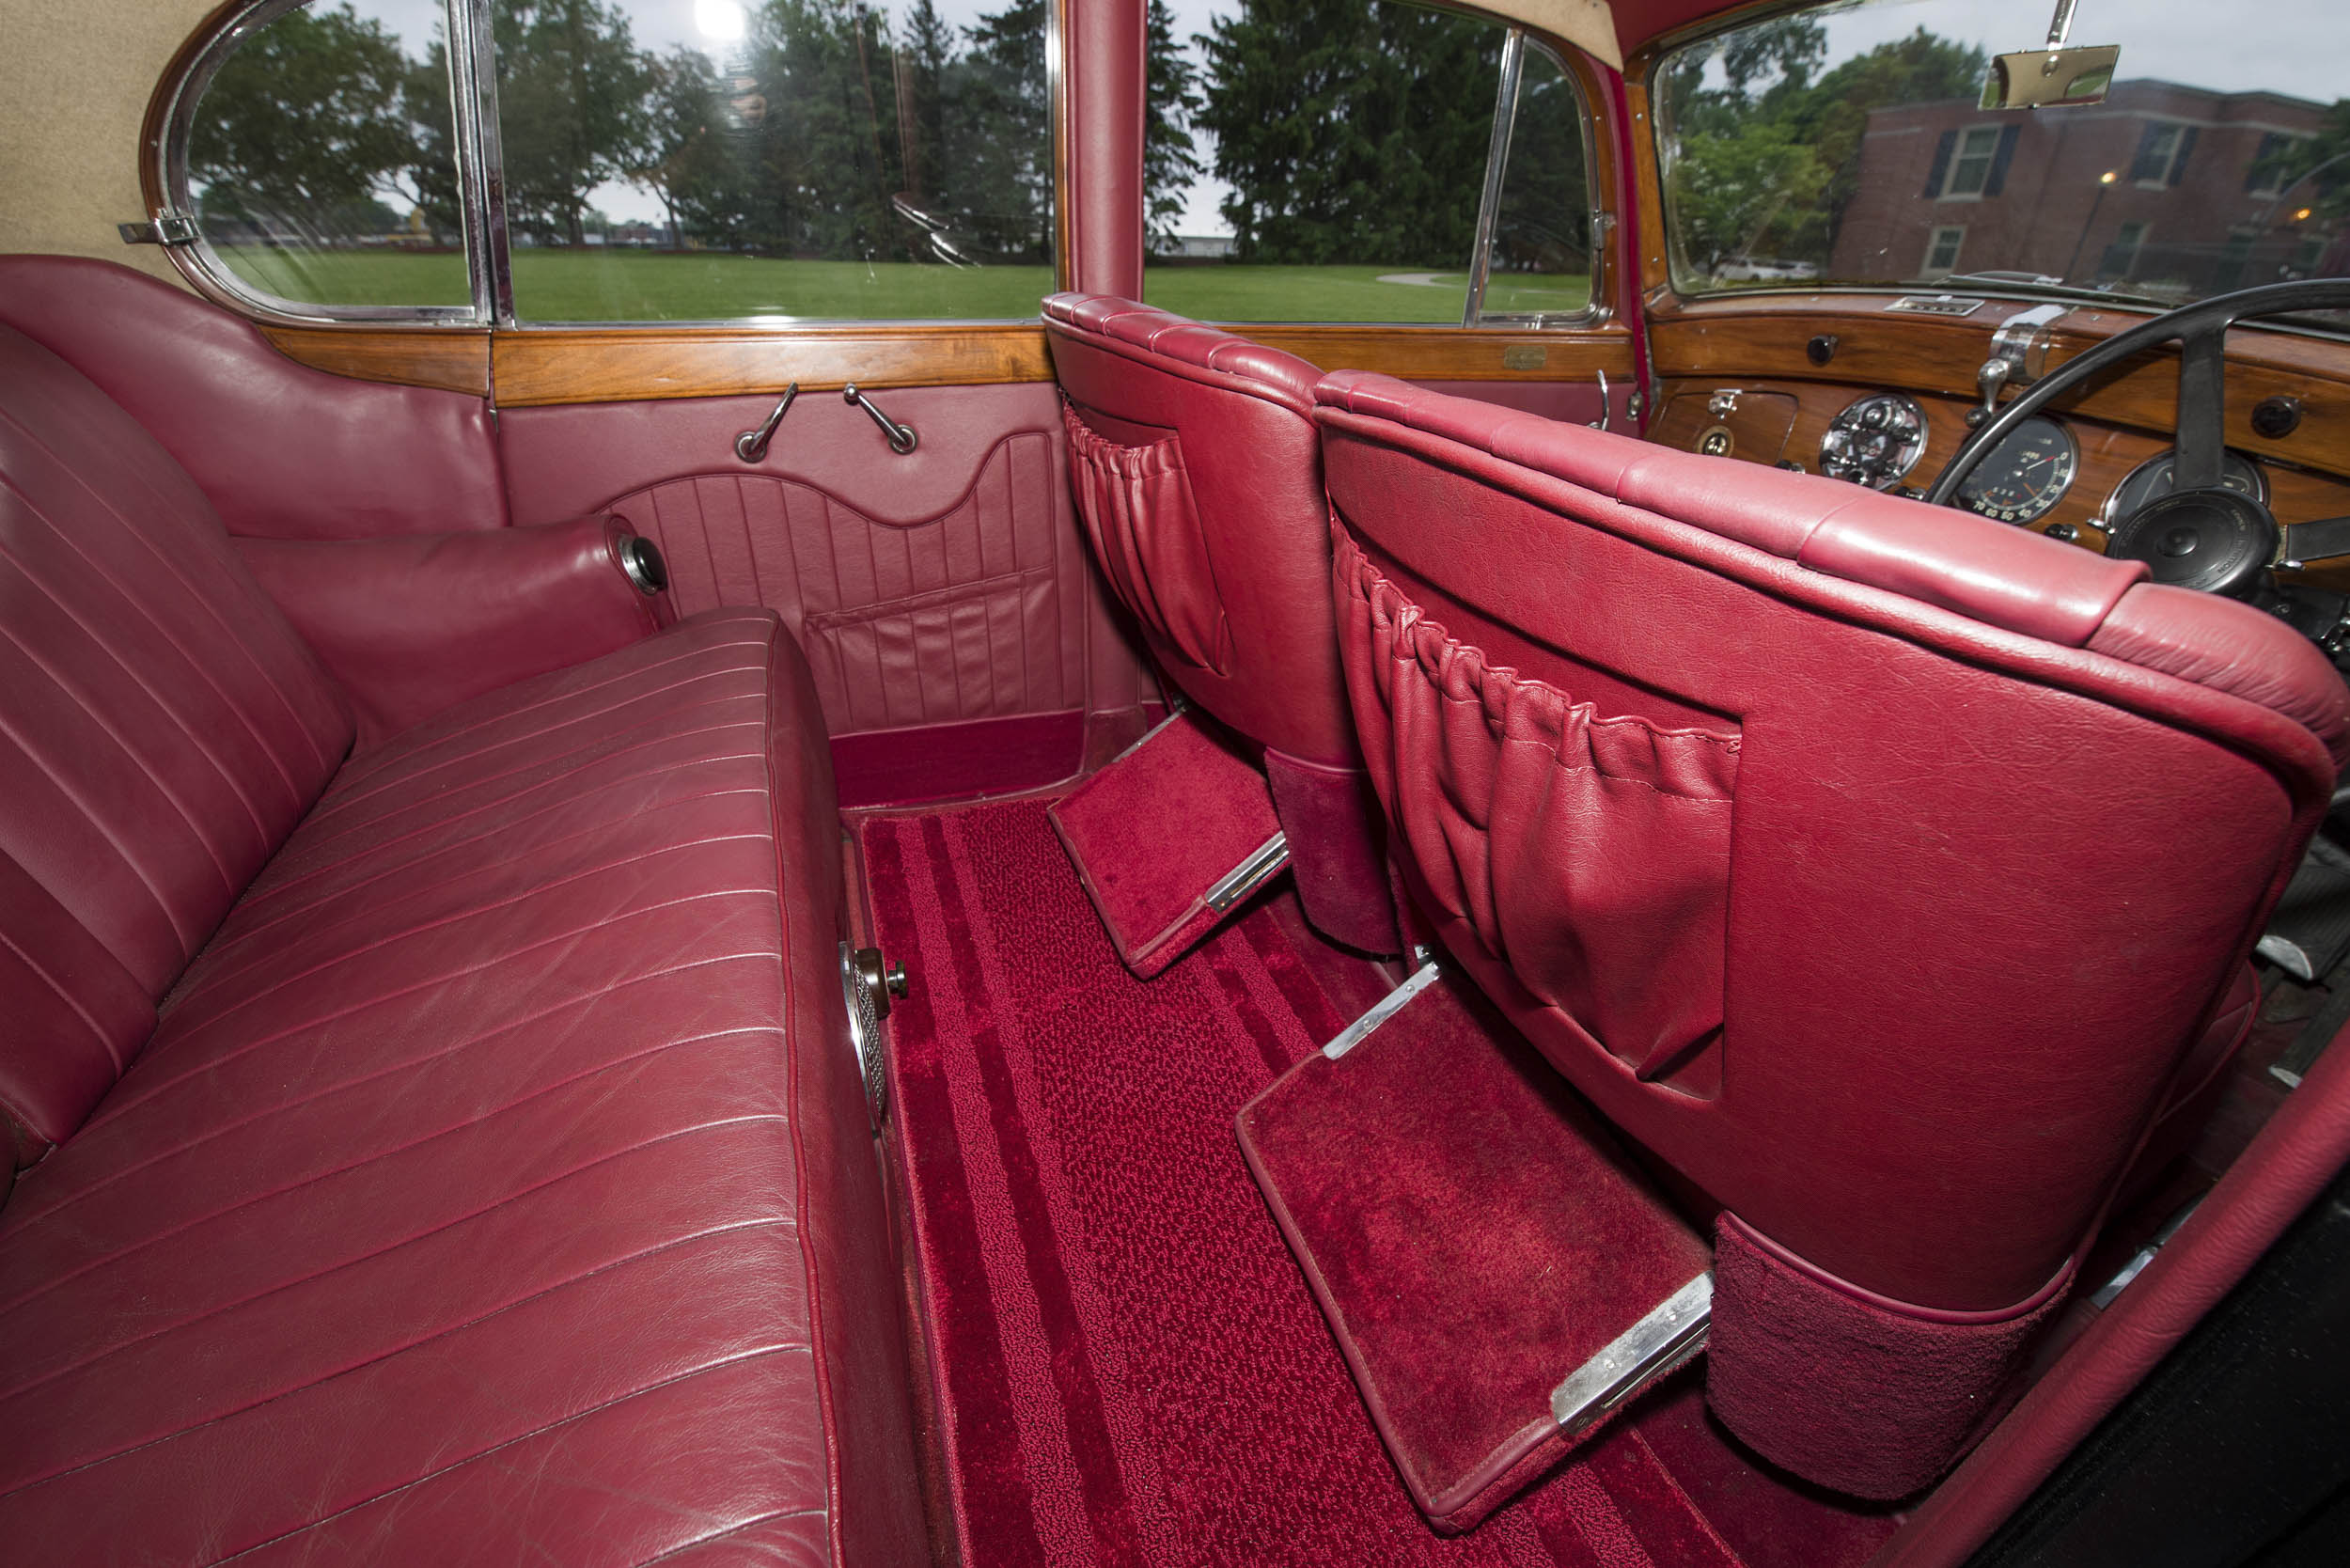 The cabin is upholstered in red leather. Pulldown footrests and stowage bins are provided for the comfort and convenience of rear-seat passengers.